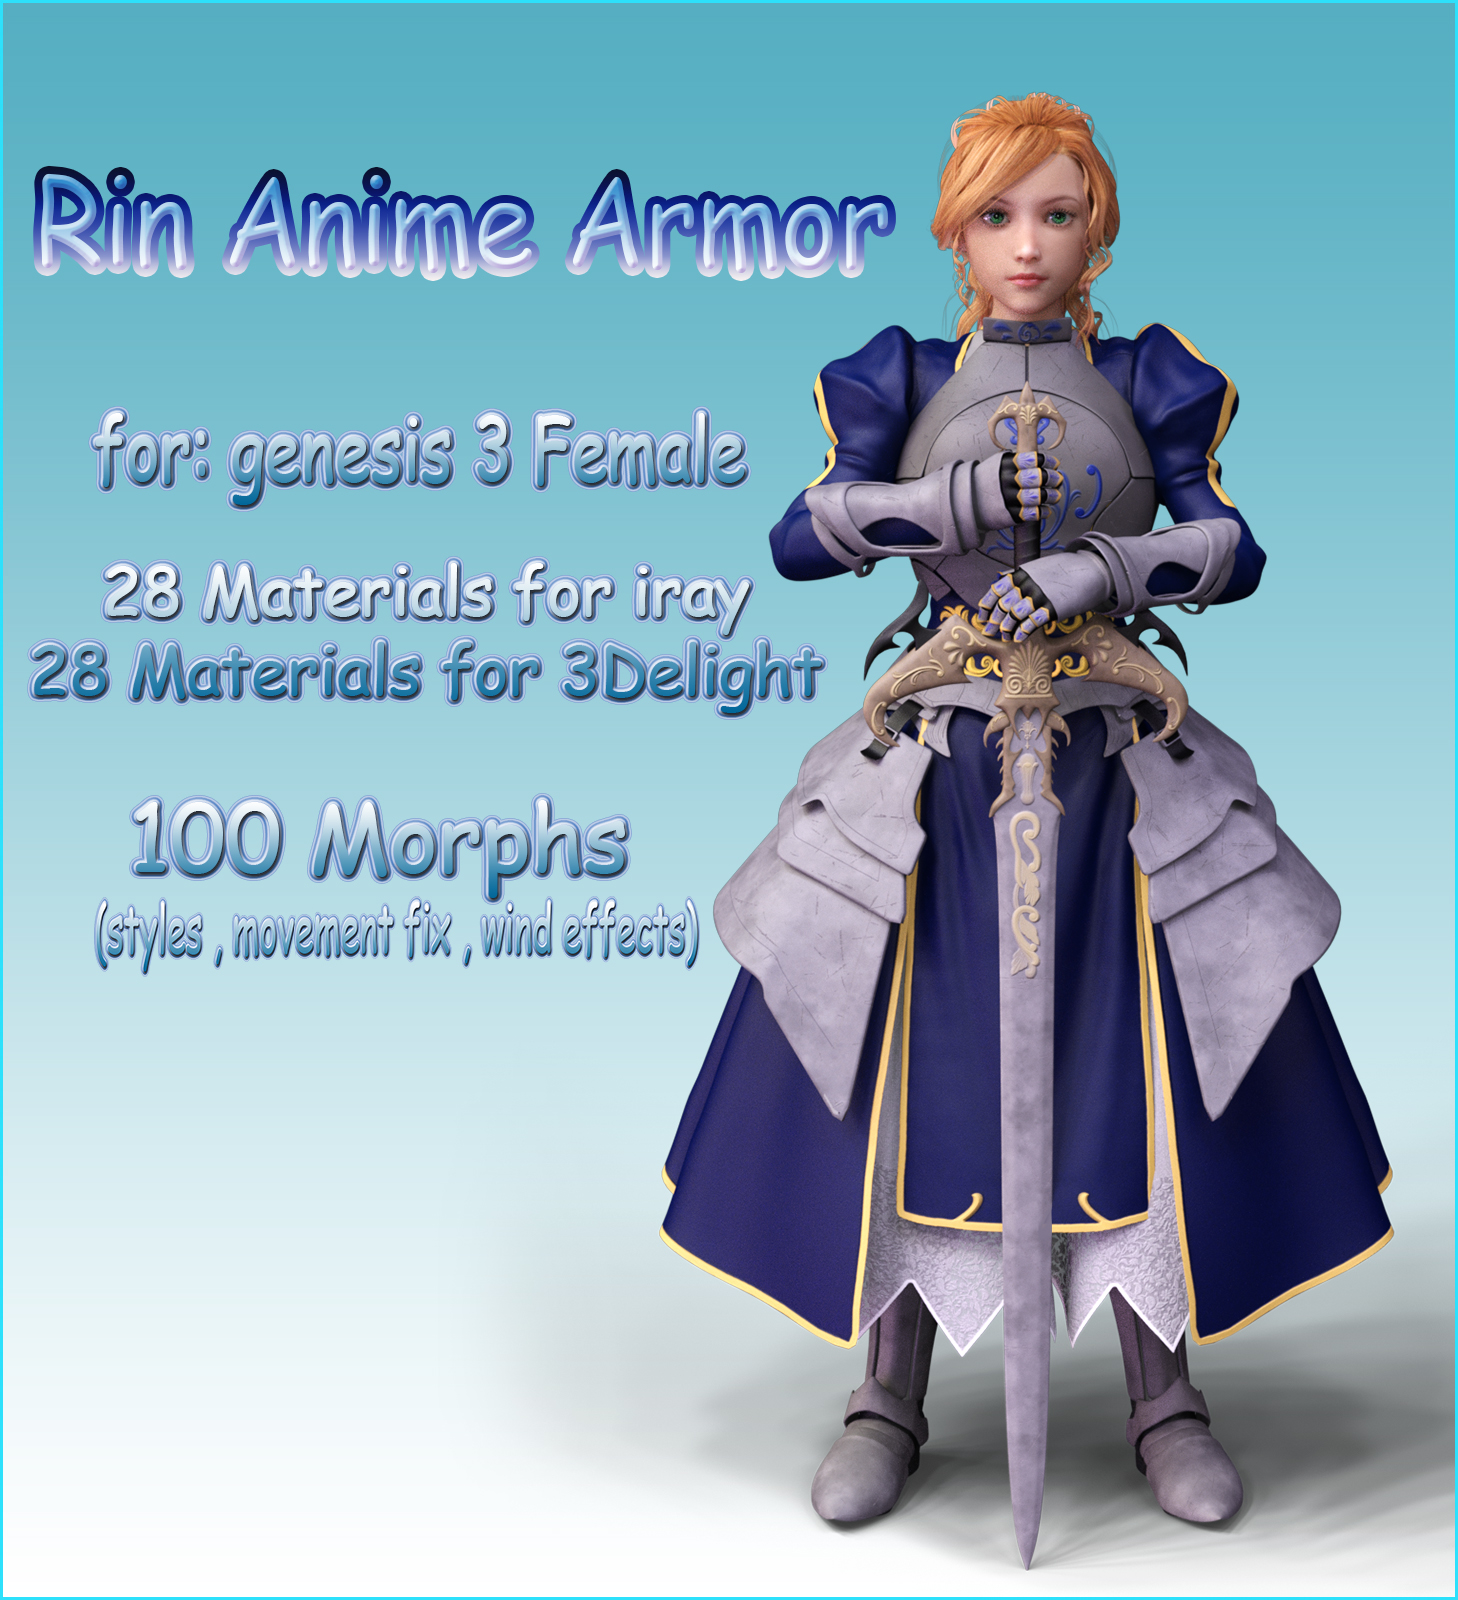 Rin Anime Armor for G3F